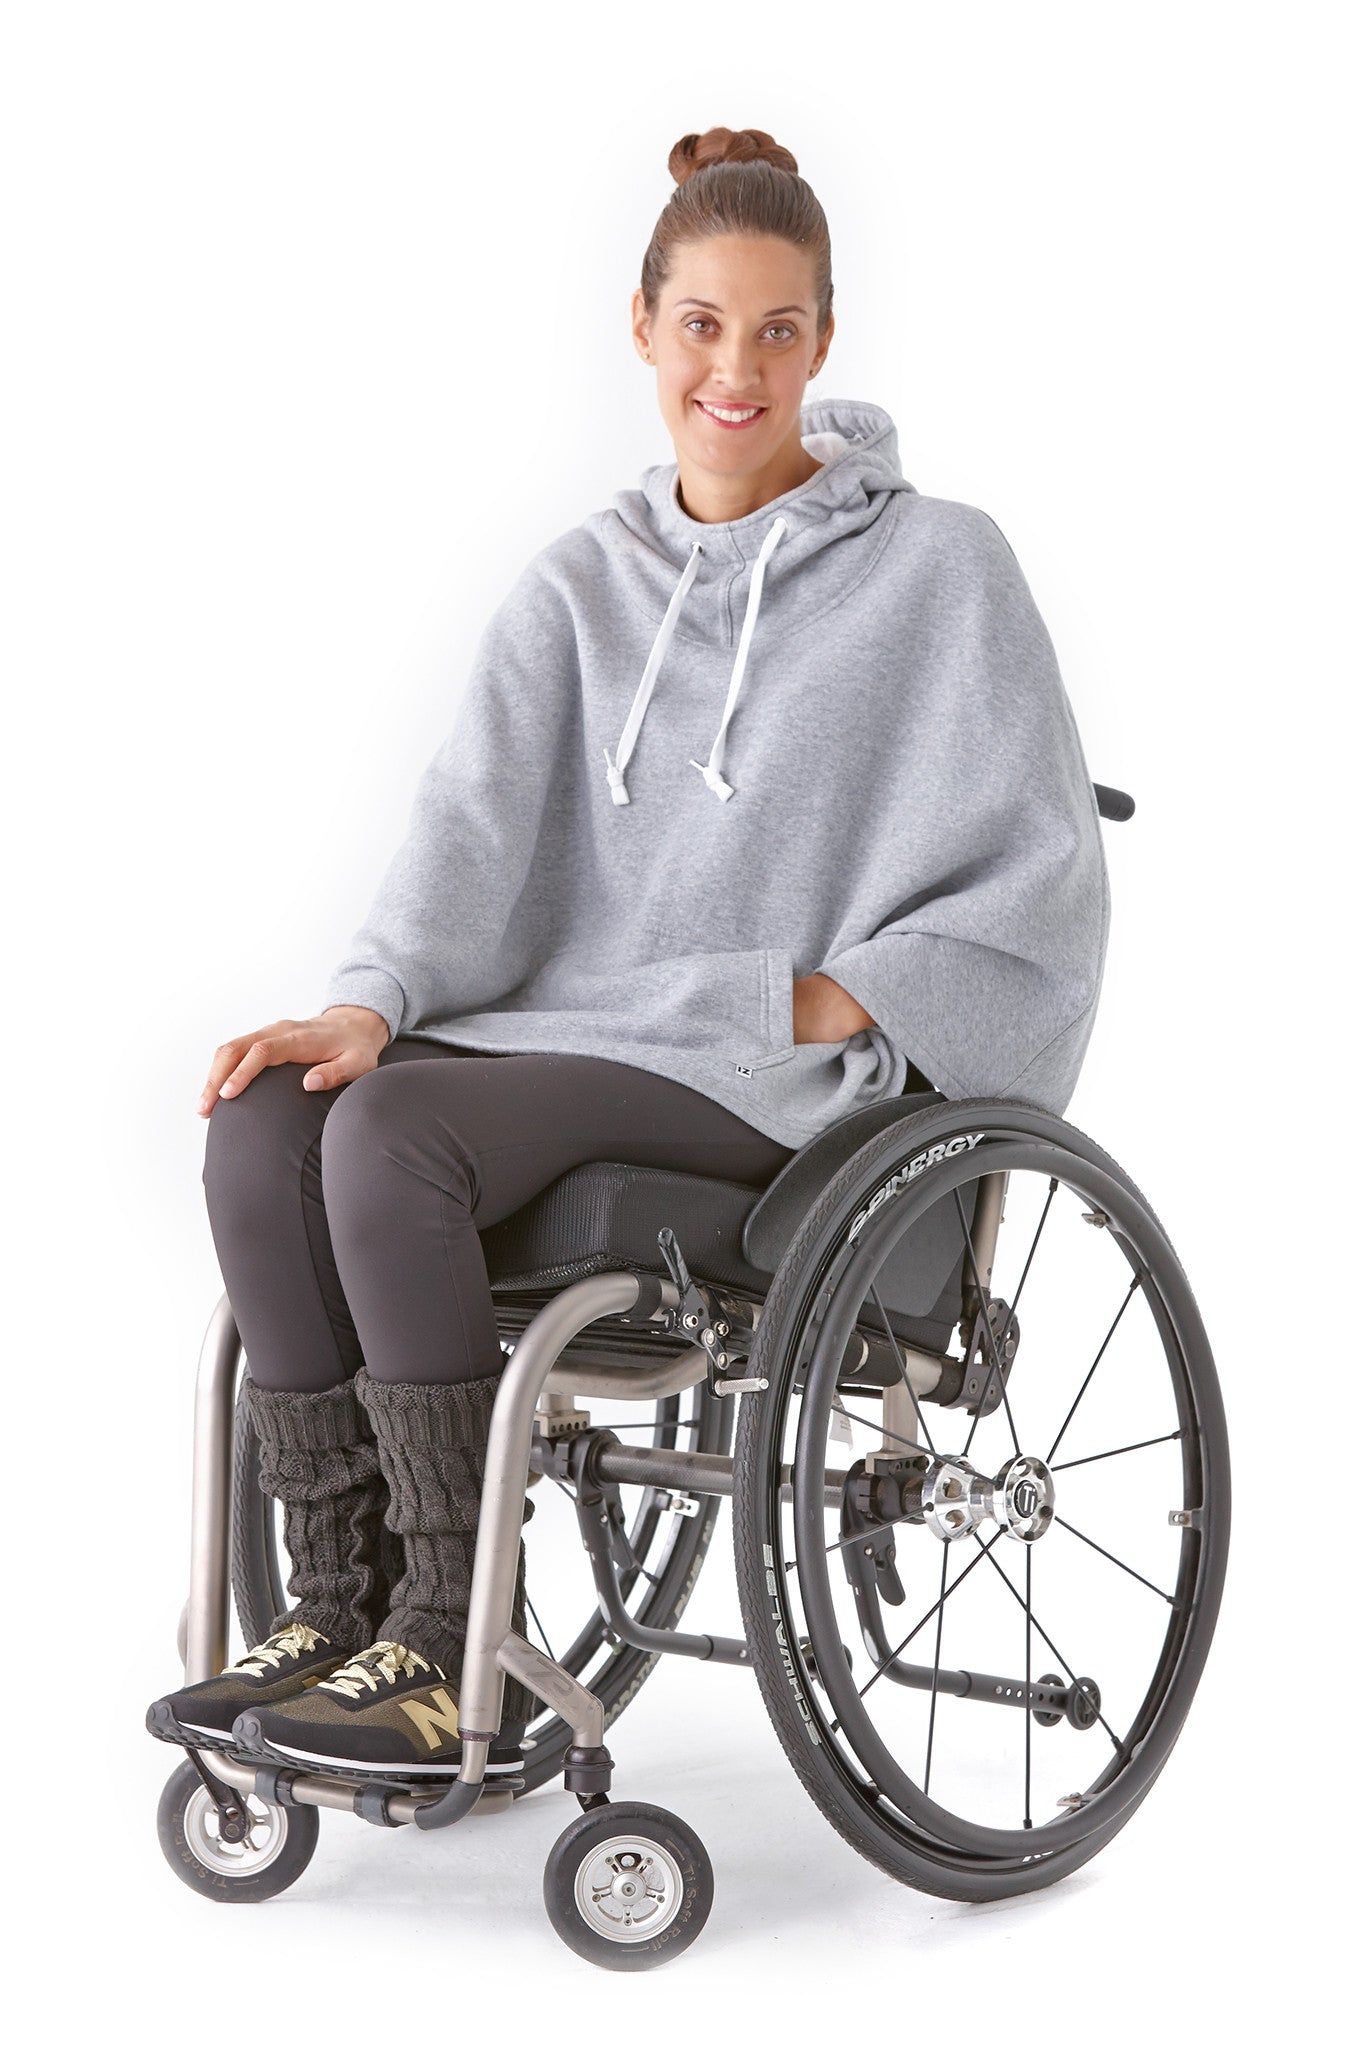 Leggings - Bold new looks in the world of adaptive apparel.